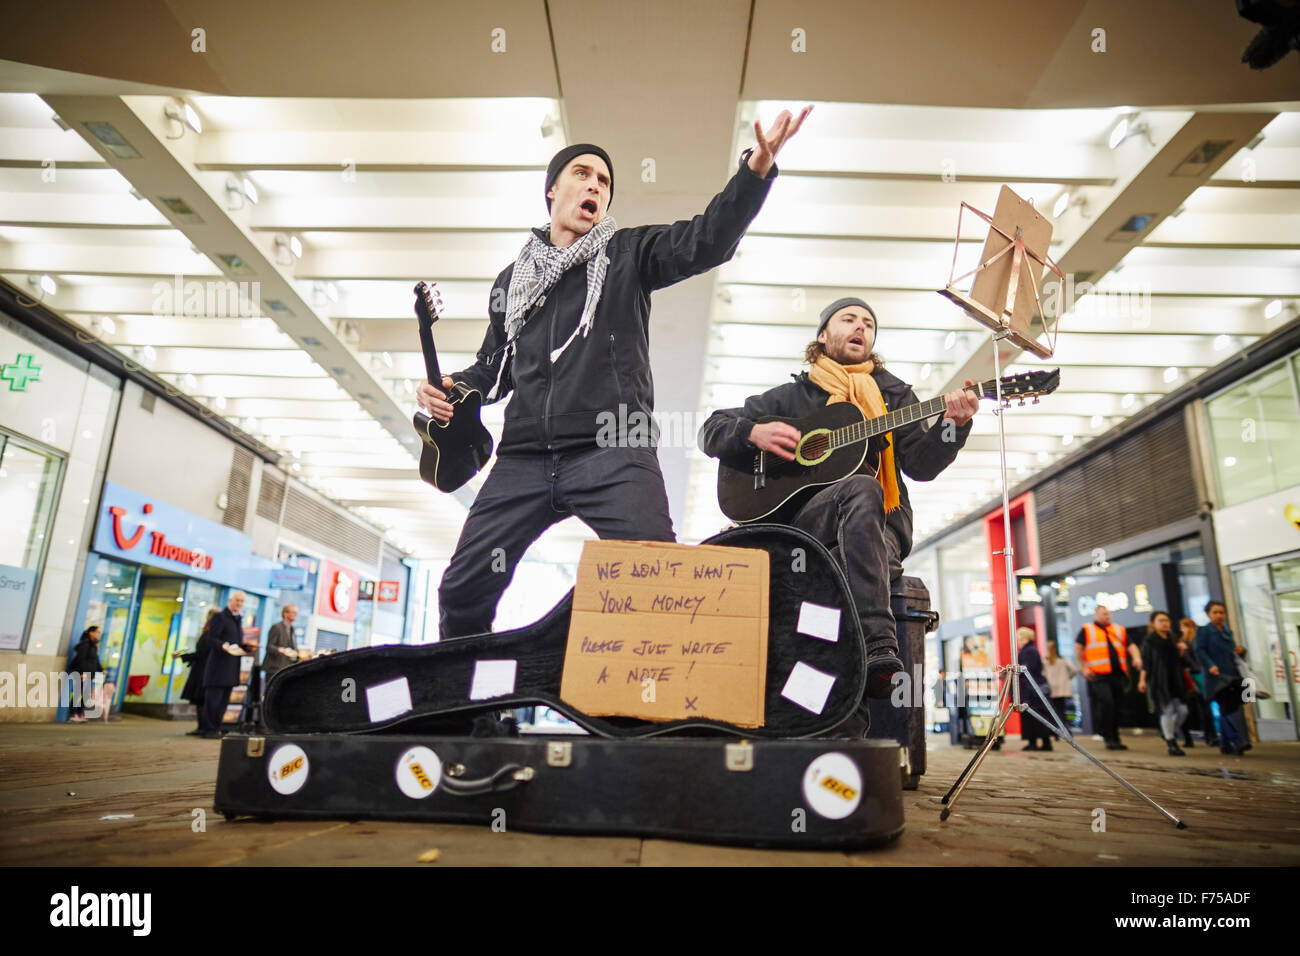 Busking buskers performance performing performer entertaing passing people crowds singing card no money   two shopping - Stock Image